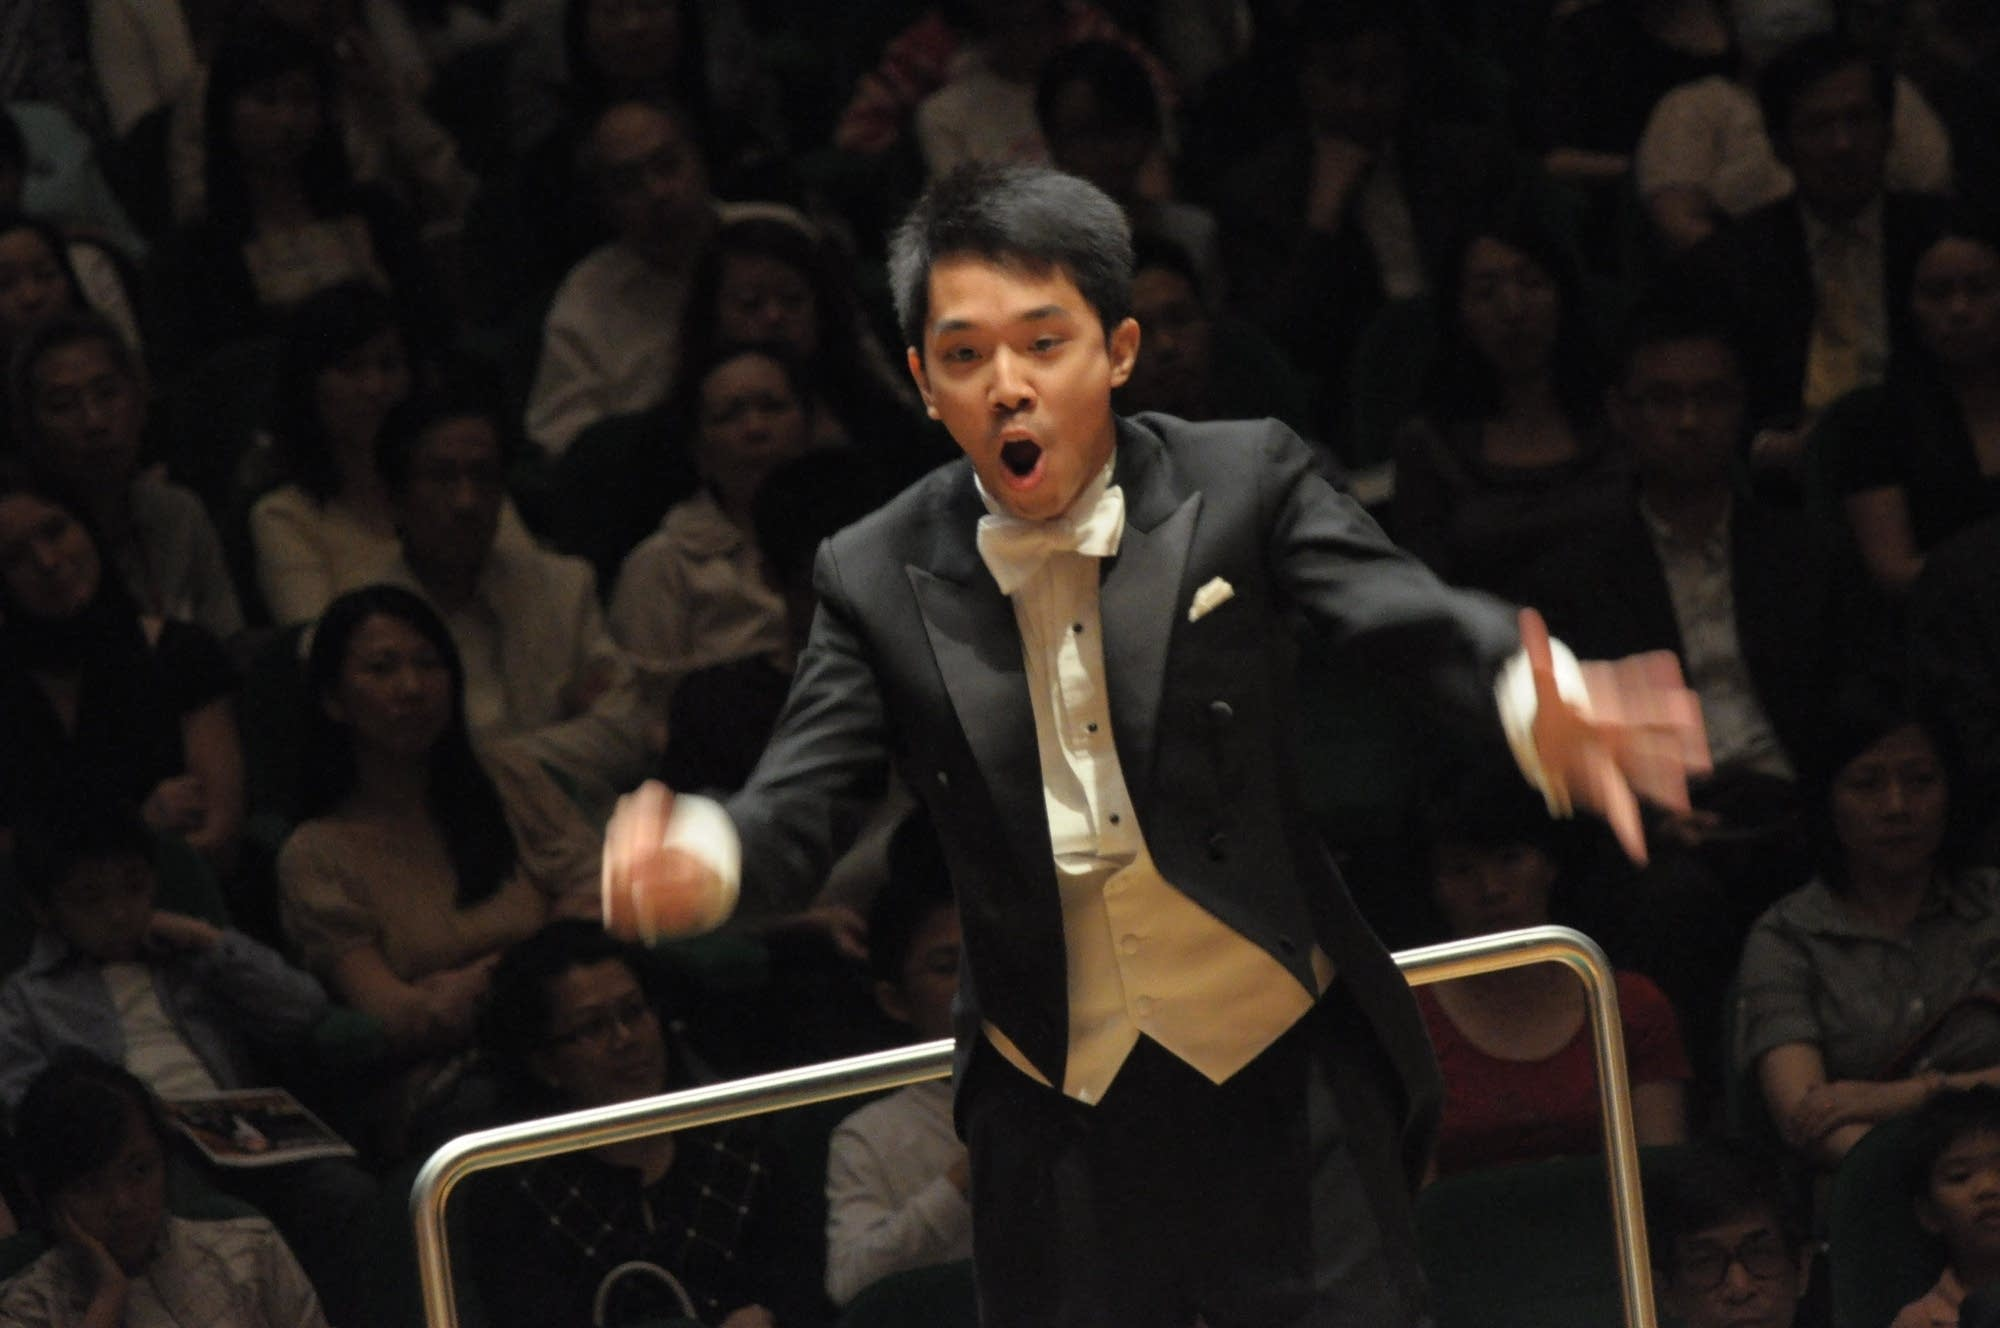 Conductor Perry So